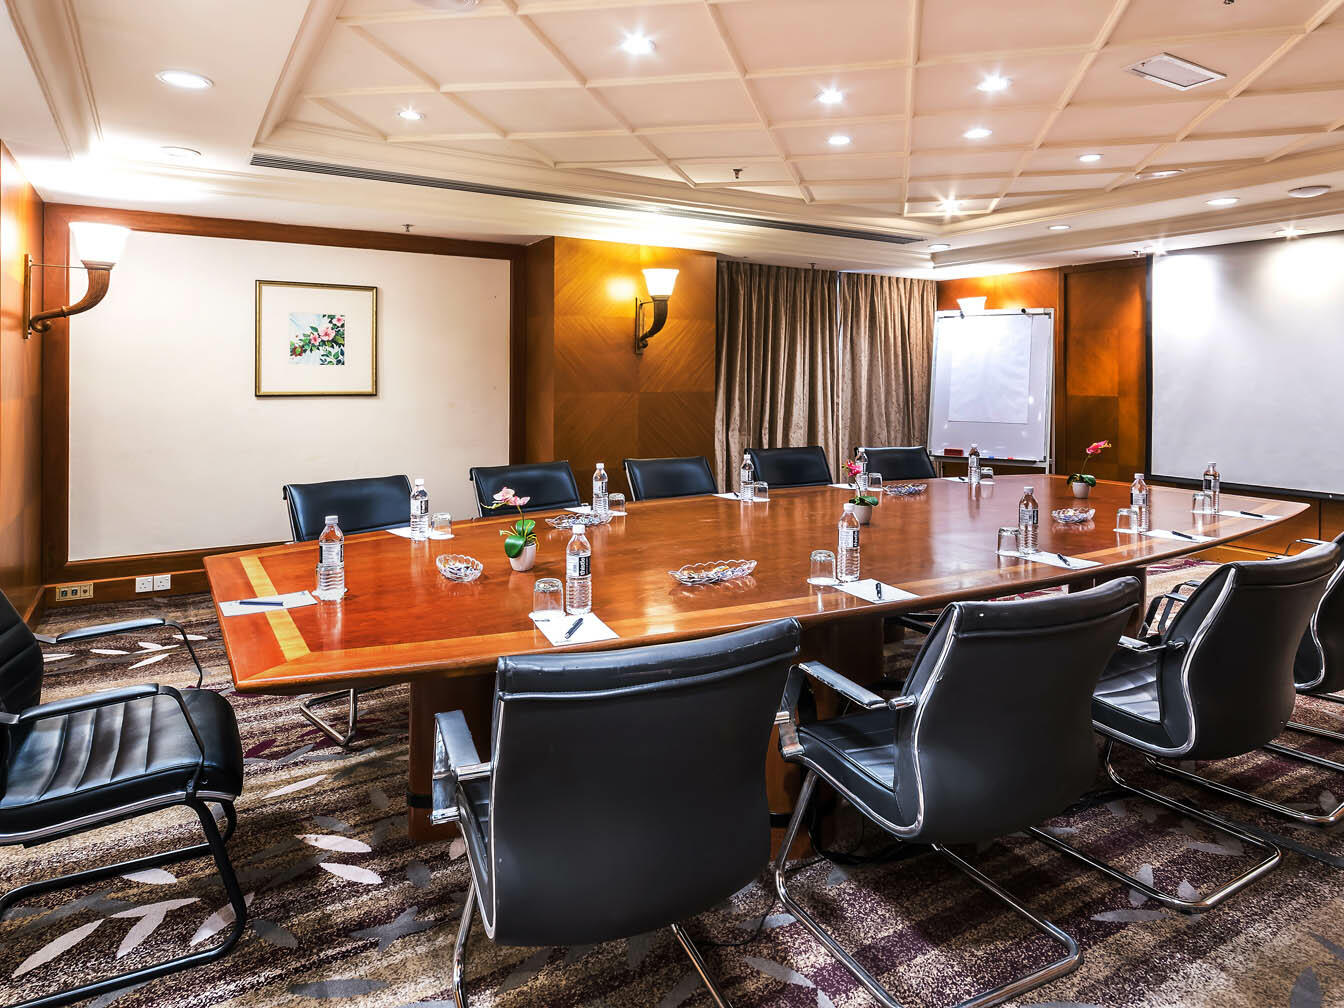 The Pepatih meeting room arranged with a wooden table and black chairs